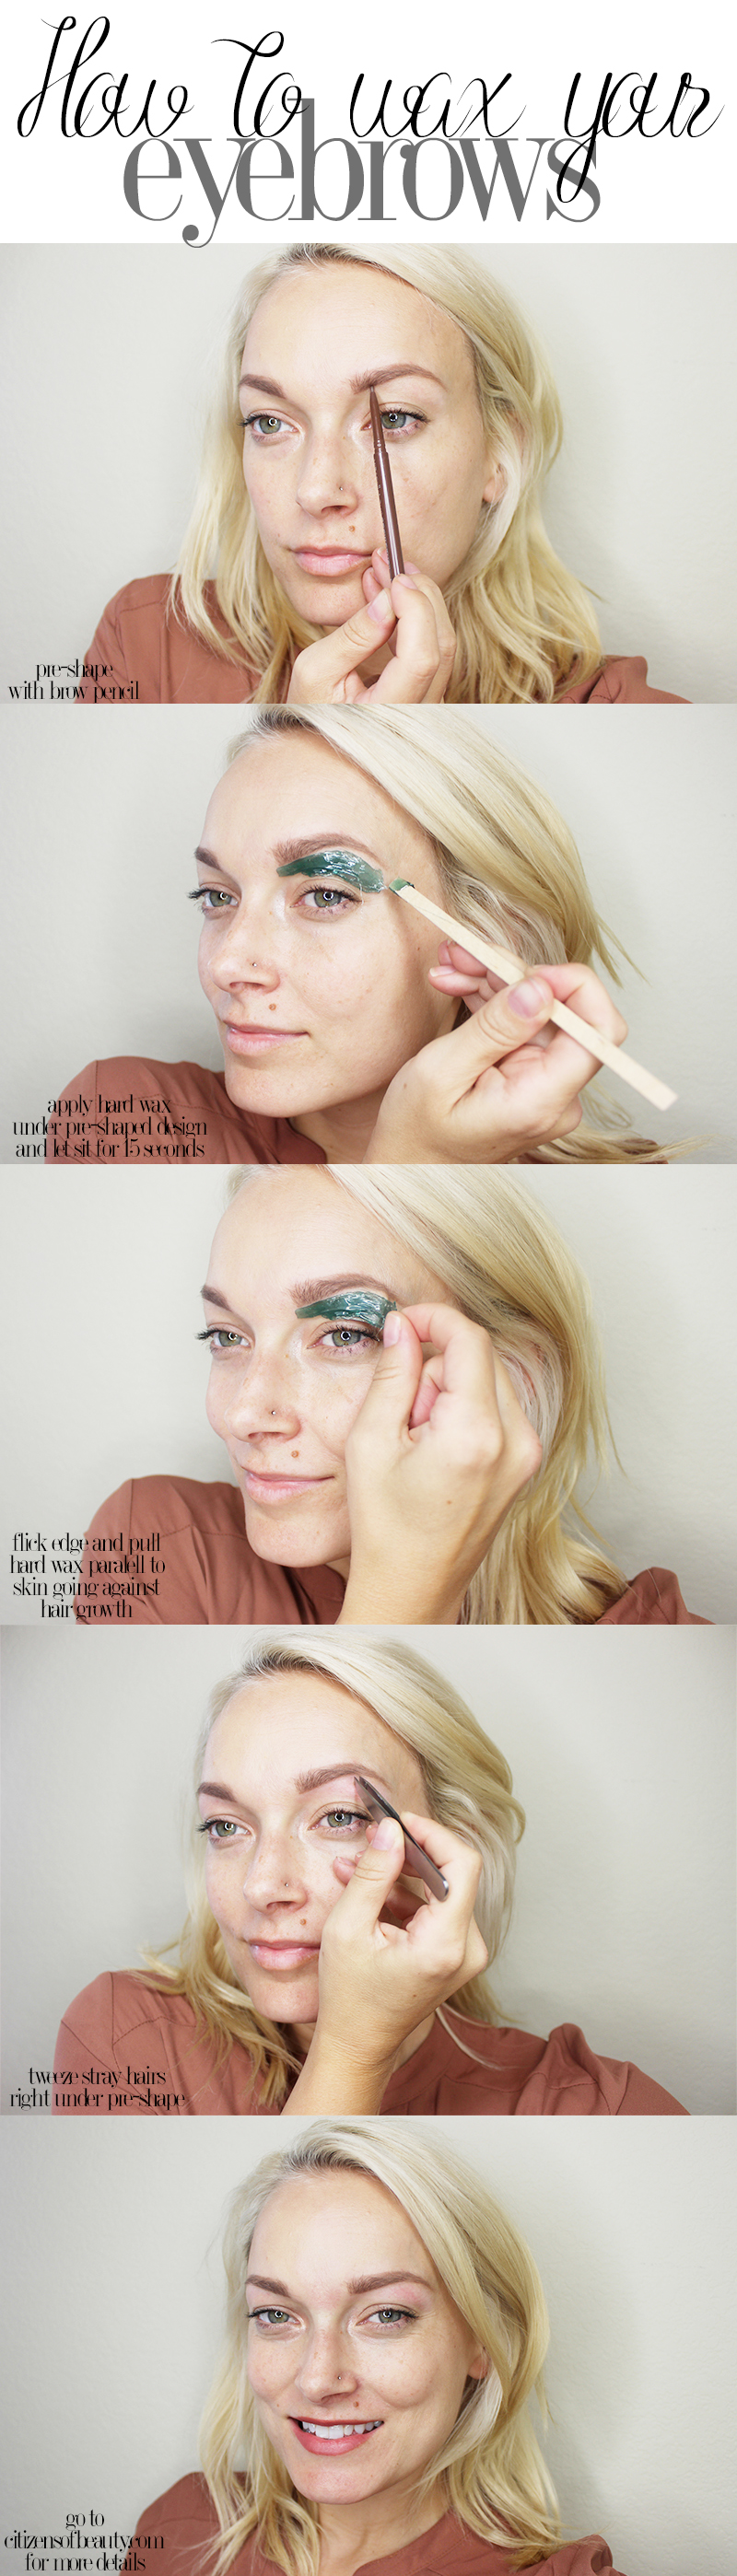 how you can wax your eyebrows at home